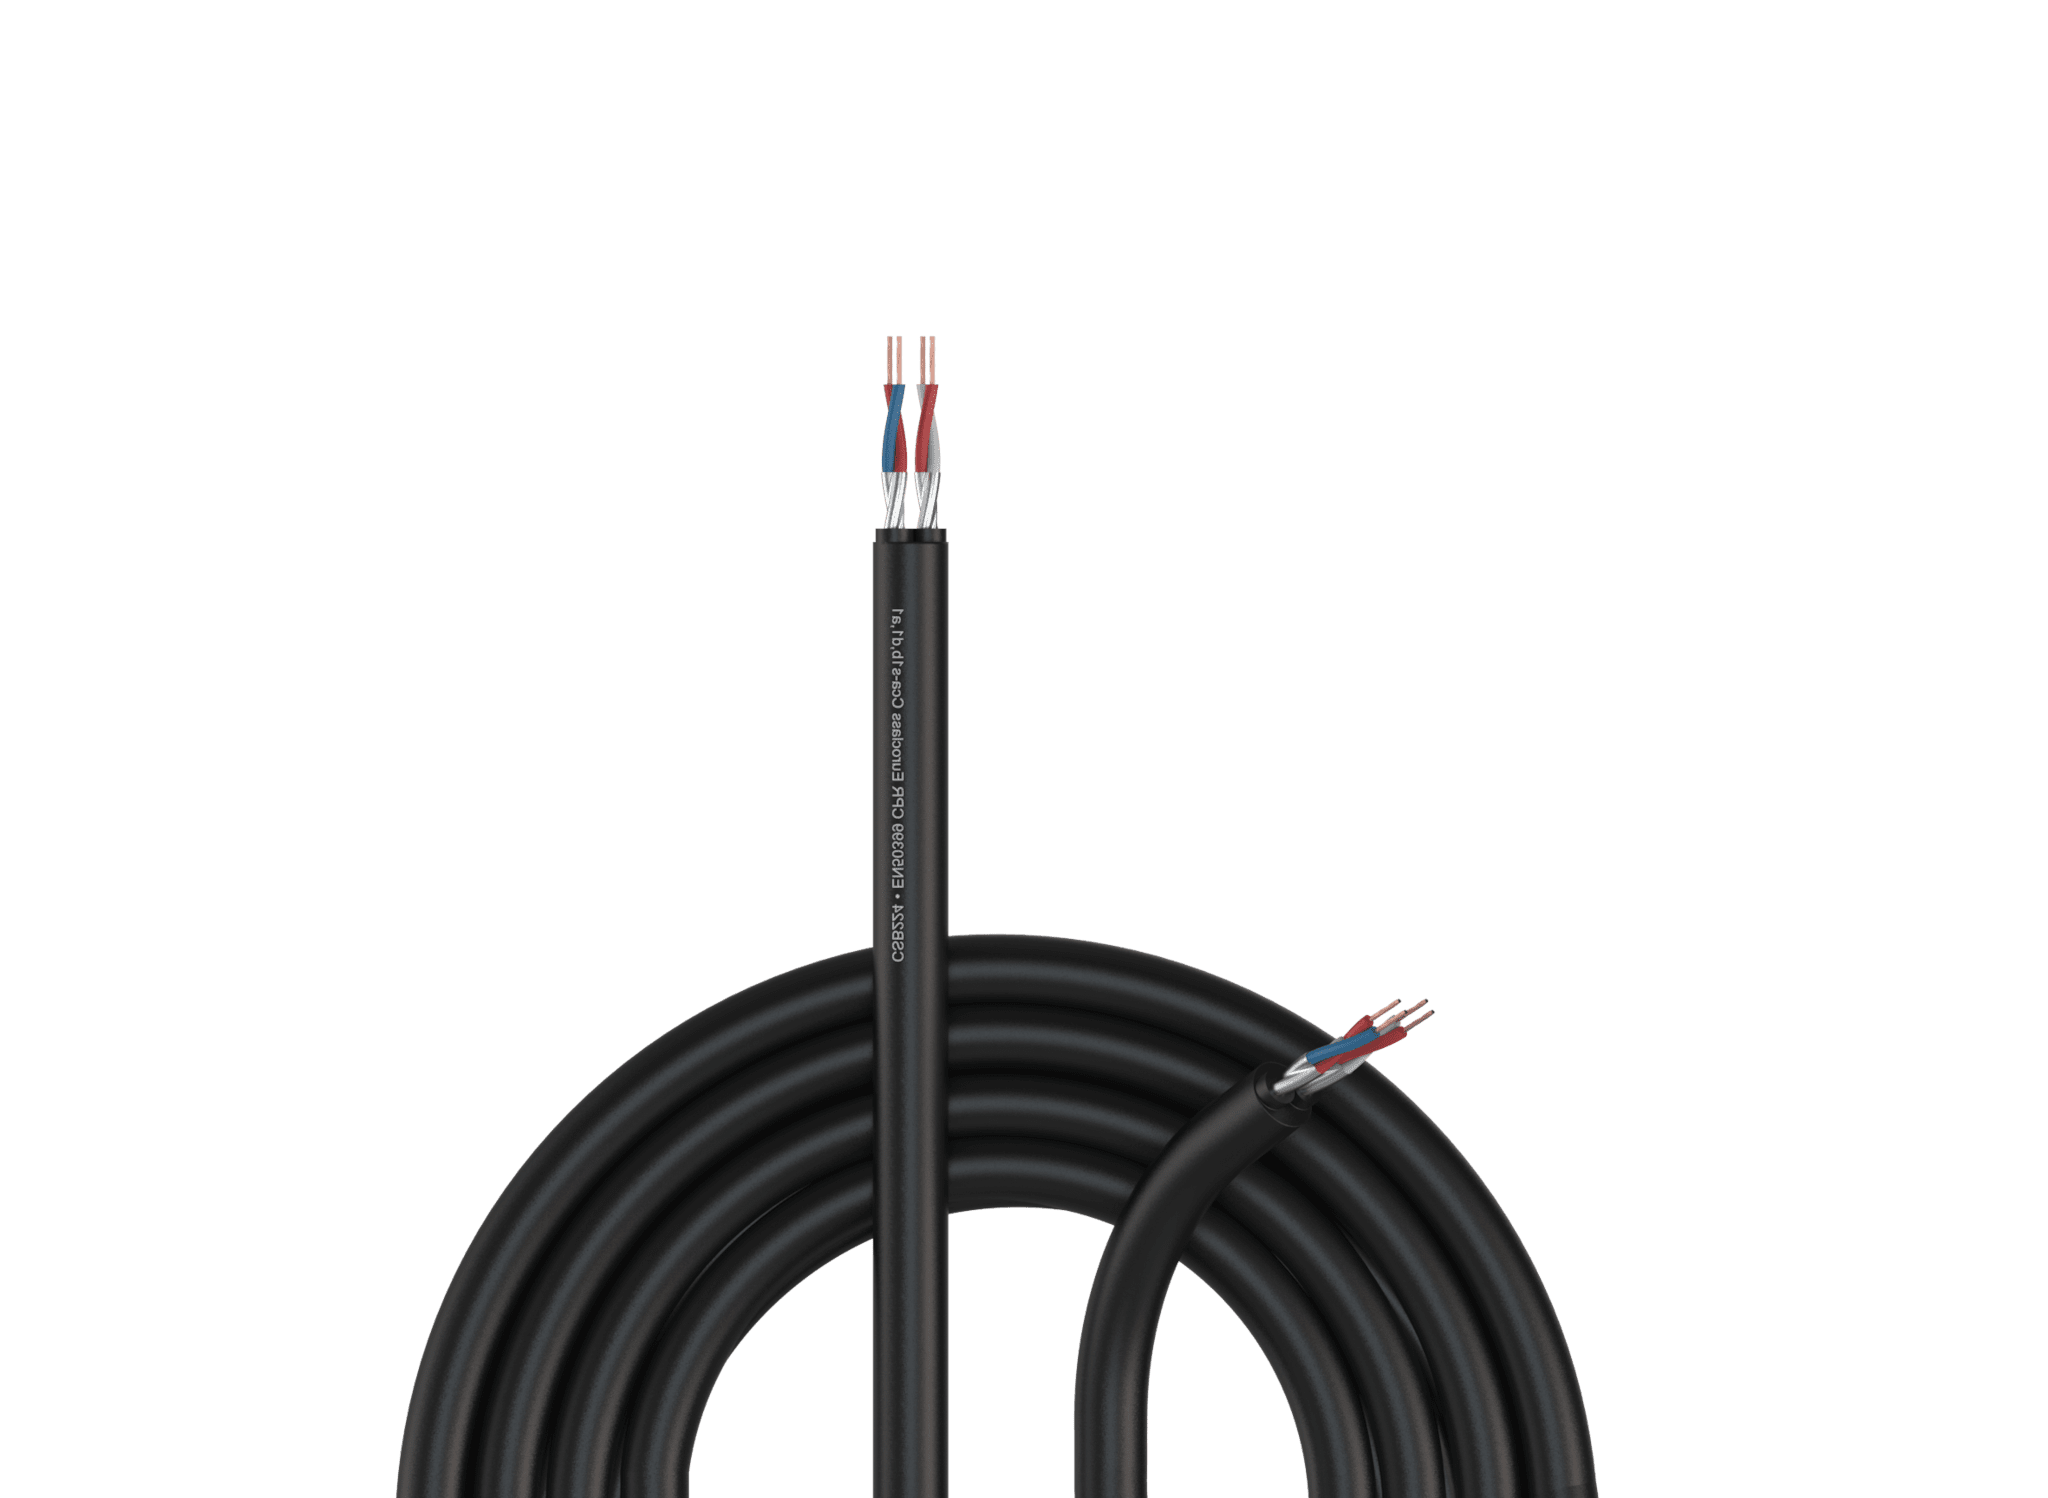 Analog signal cables -